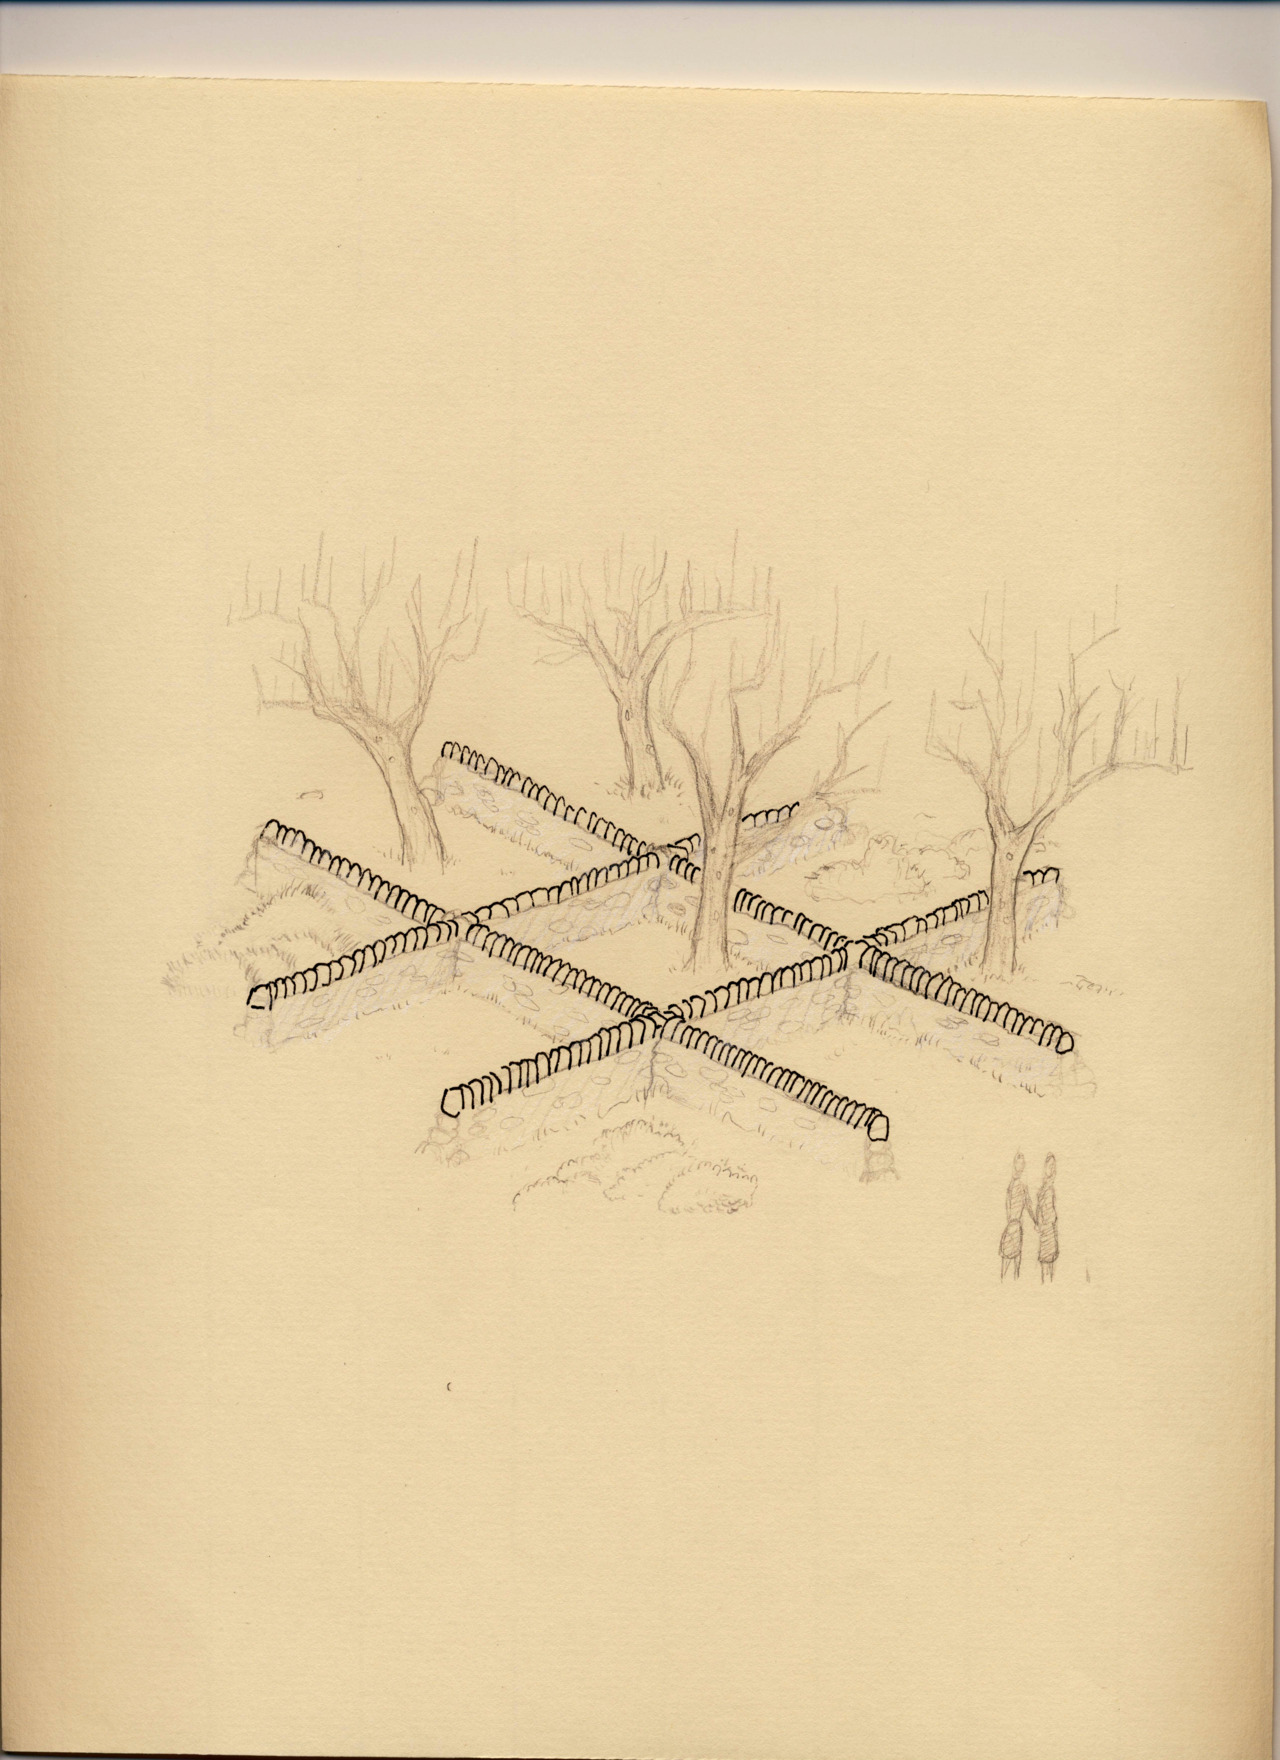 Successional Tic Tack Toe   Ink, graphite, and white colored pencil Proposal for successional Tic Tac Toe board installation in Harmony, Maine   Left to their own successional devices, which species would win a game of successional tick tack toe in an abandoned agricultural field over the course of twenty years?  Juniper virginiana, Rosa multiflora , Pinus strobus, Betula  lenta , etc.  Place your bets.